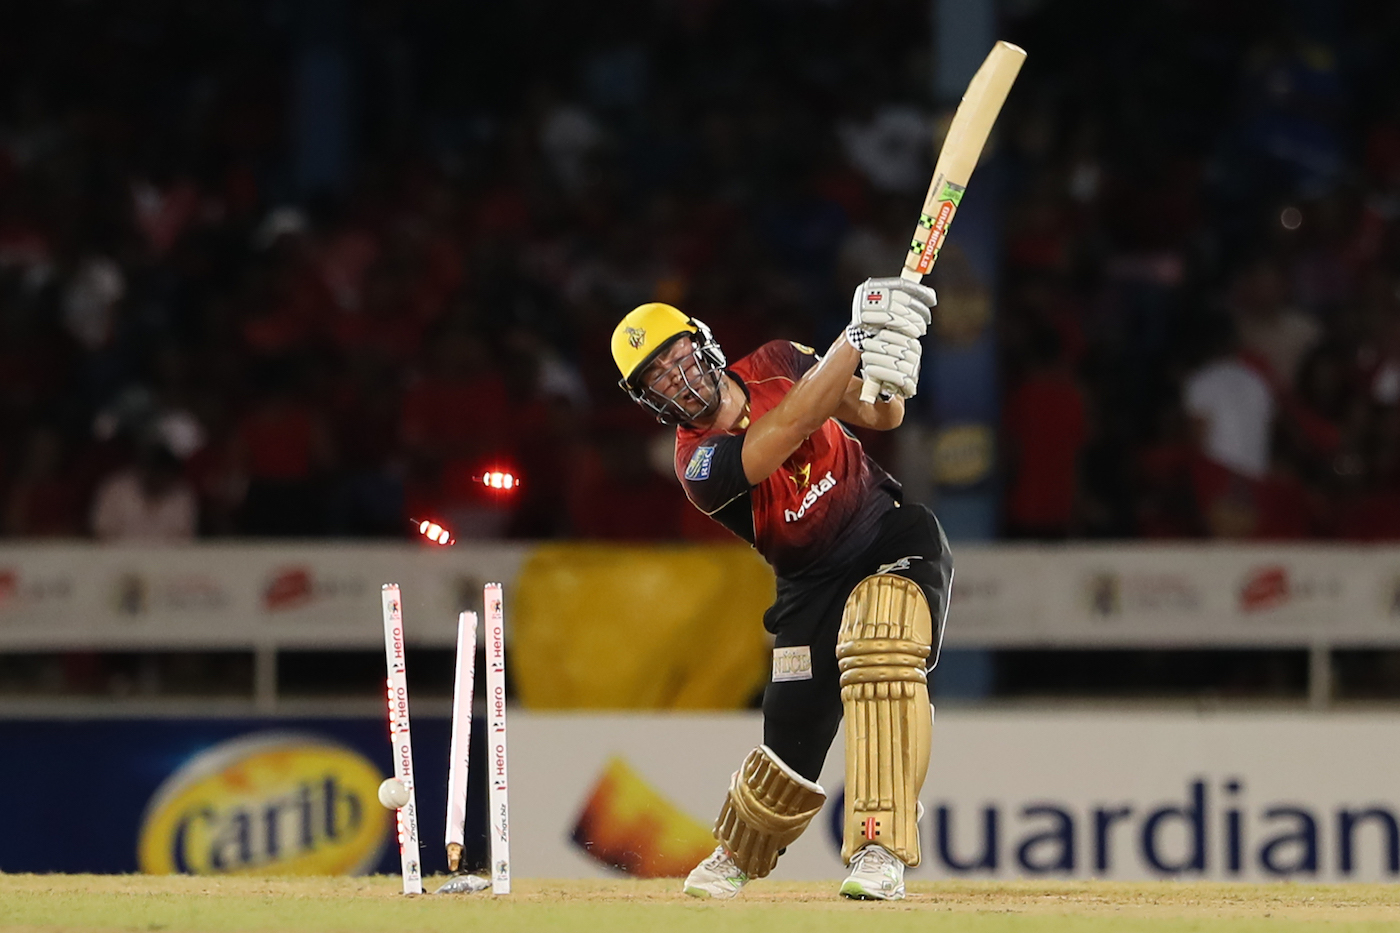 Go big or go home (it's okay either way): the Knight Riders franchises give their top-order batsmen the freedom to hit out without worrying about their wickets